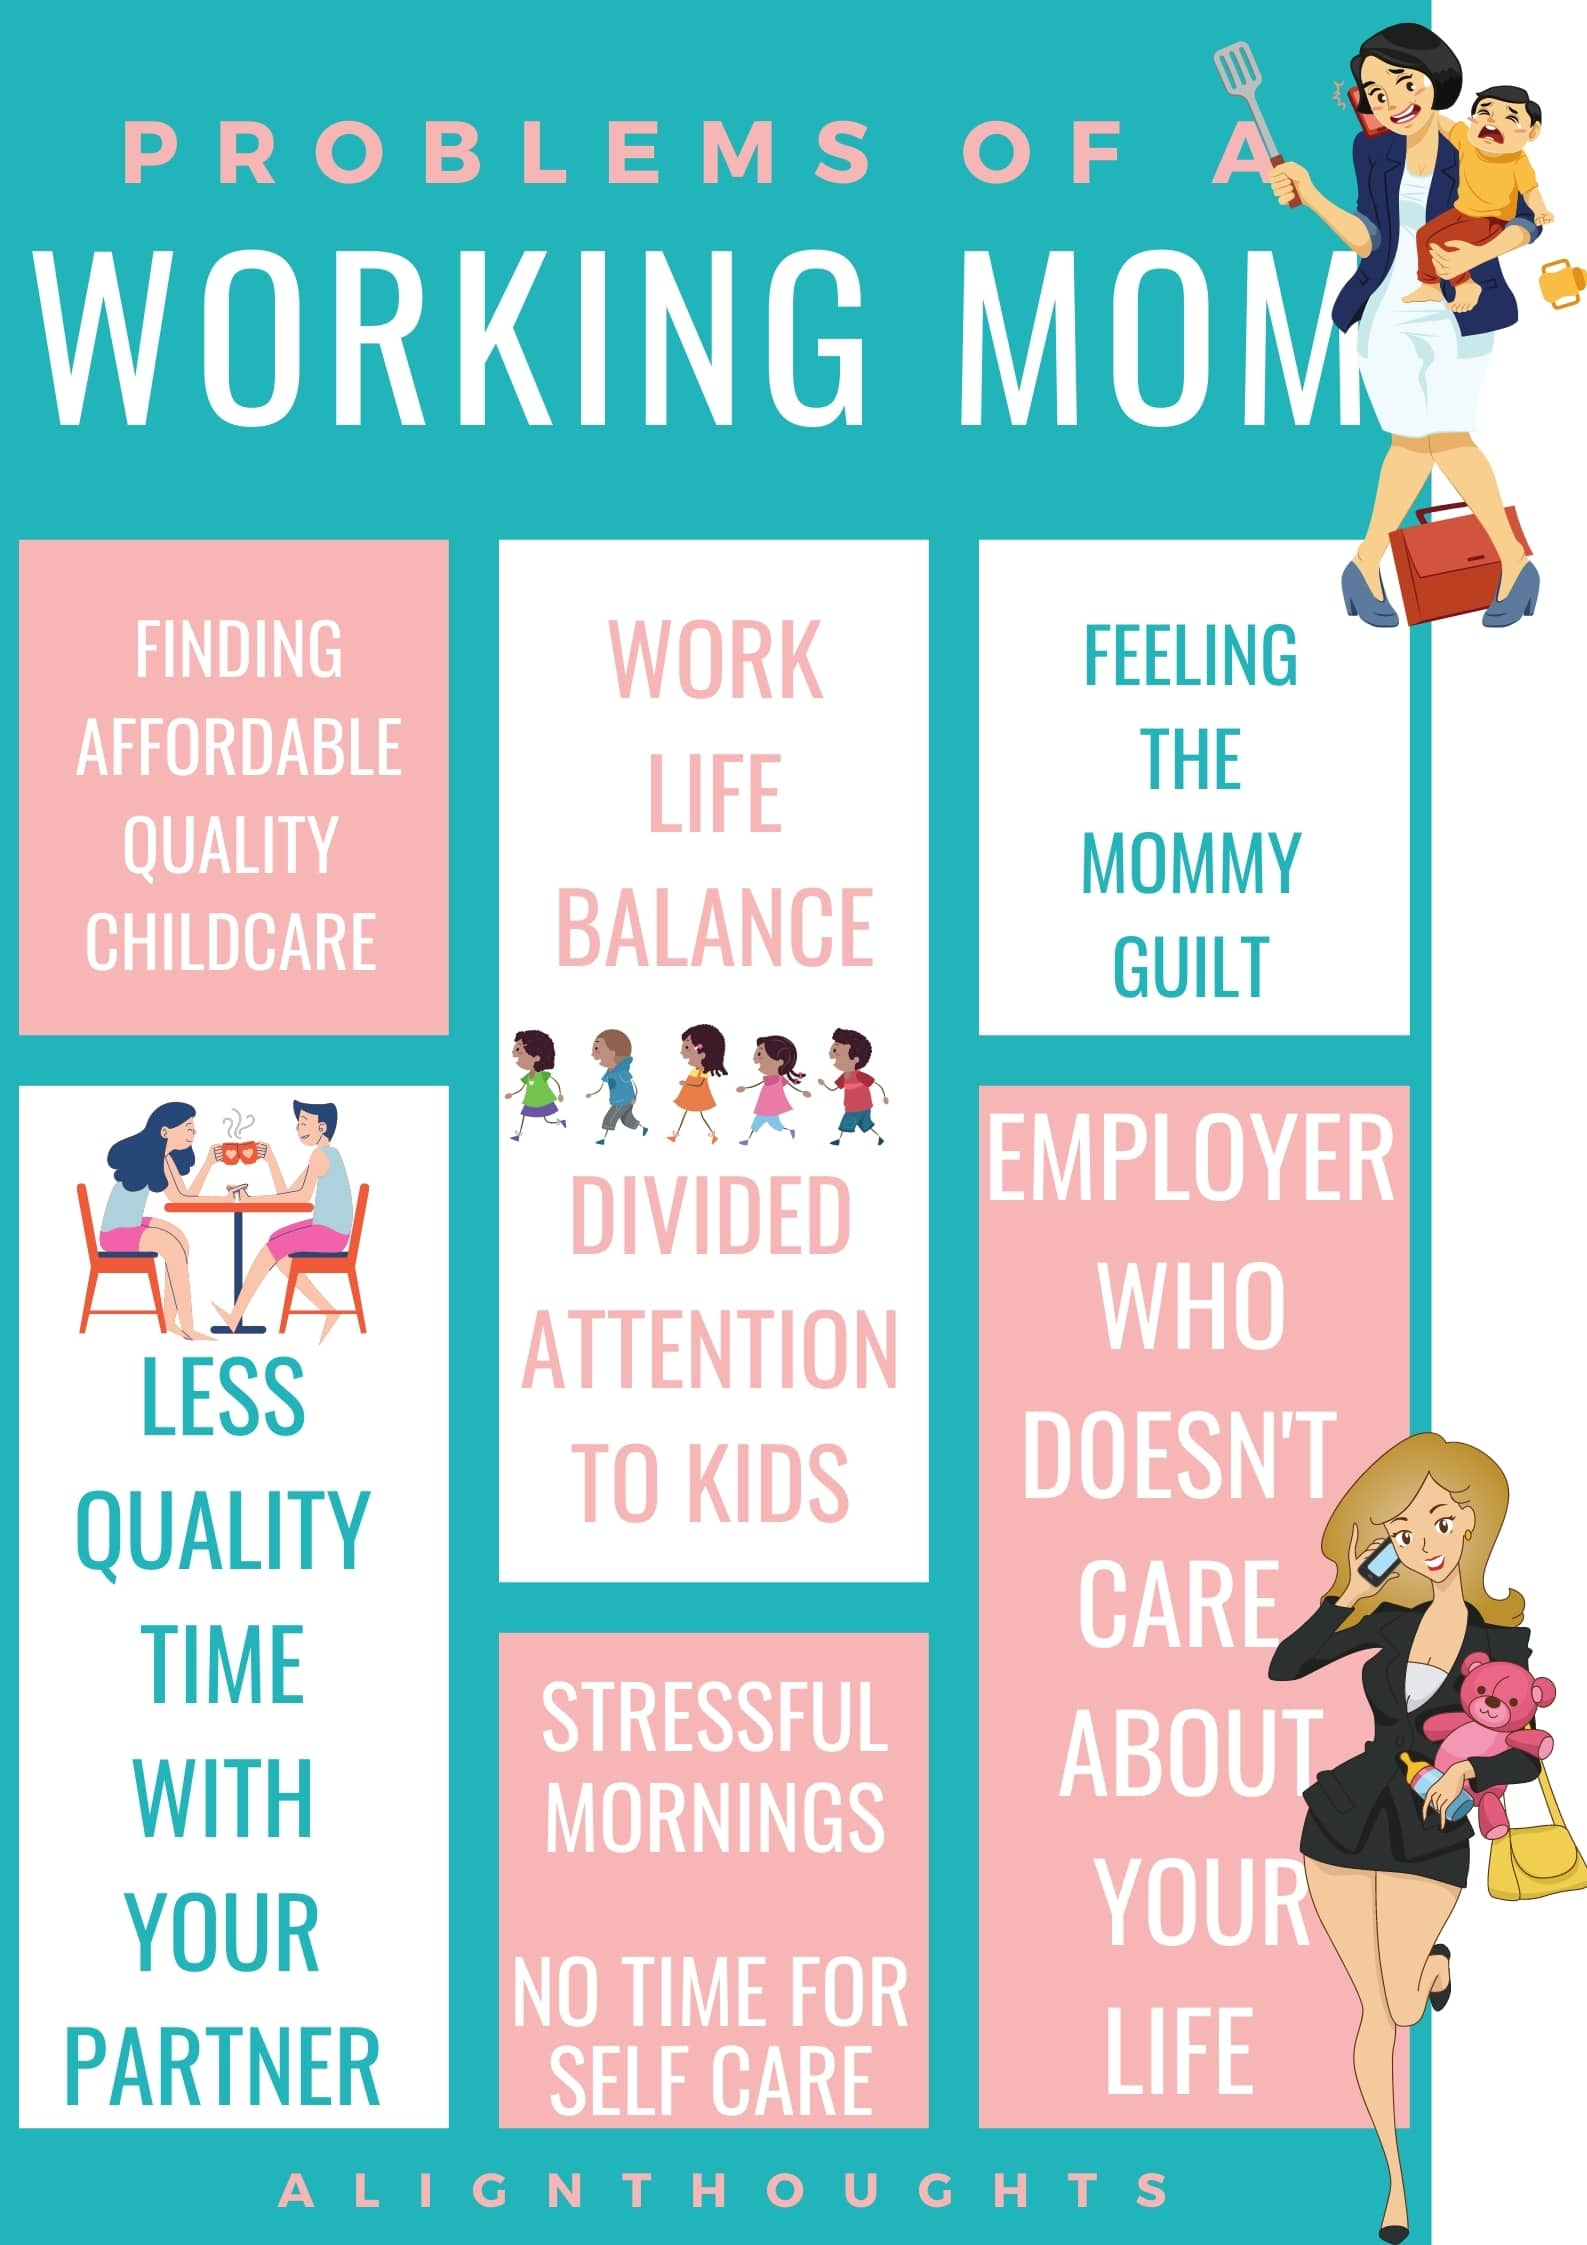 struggling being the working mom tips-alignthoughts